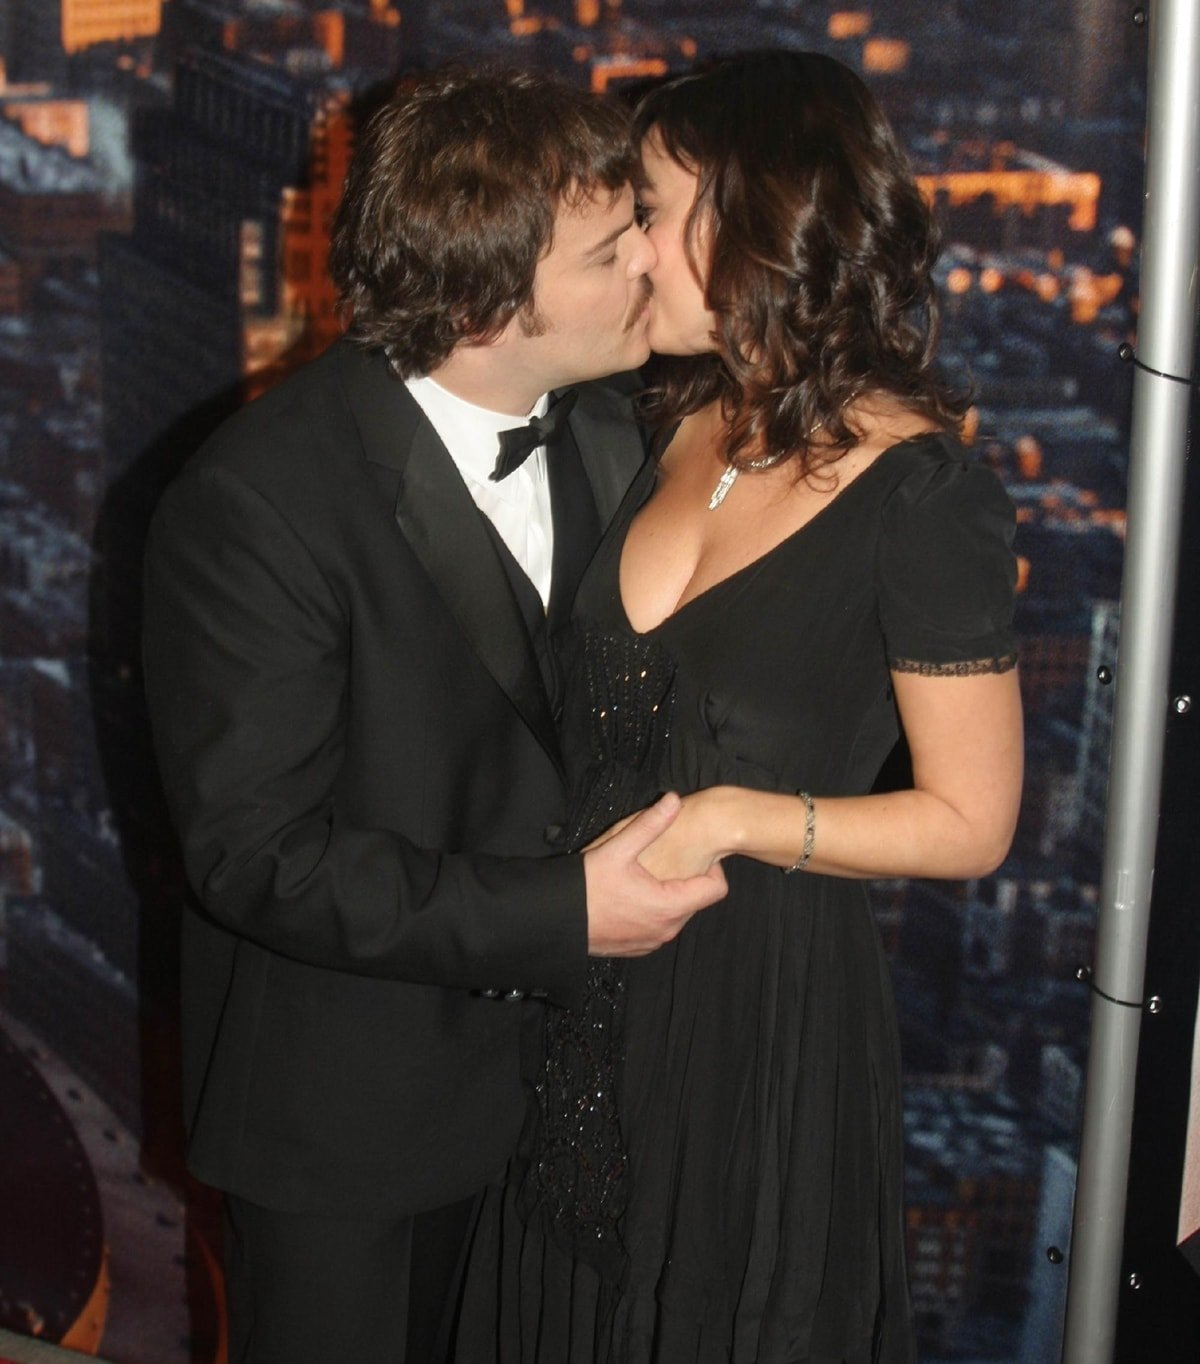 Jack Black kissing his girlfriend Tanya Haden during Universal Pictures' King Kong New York City Premiere